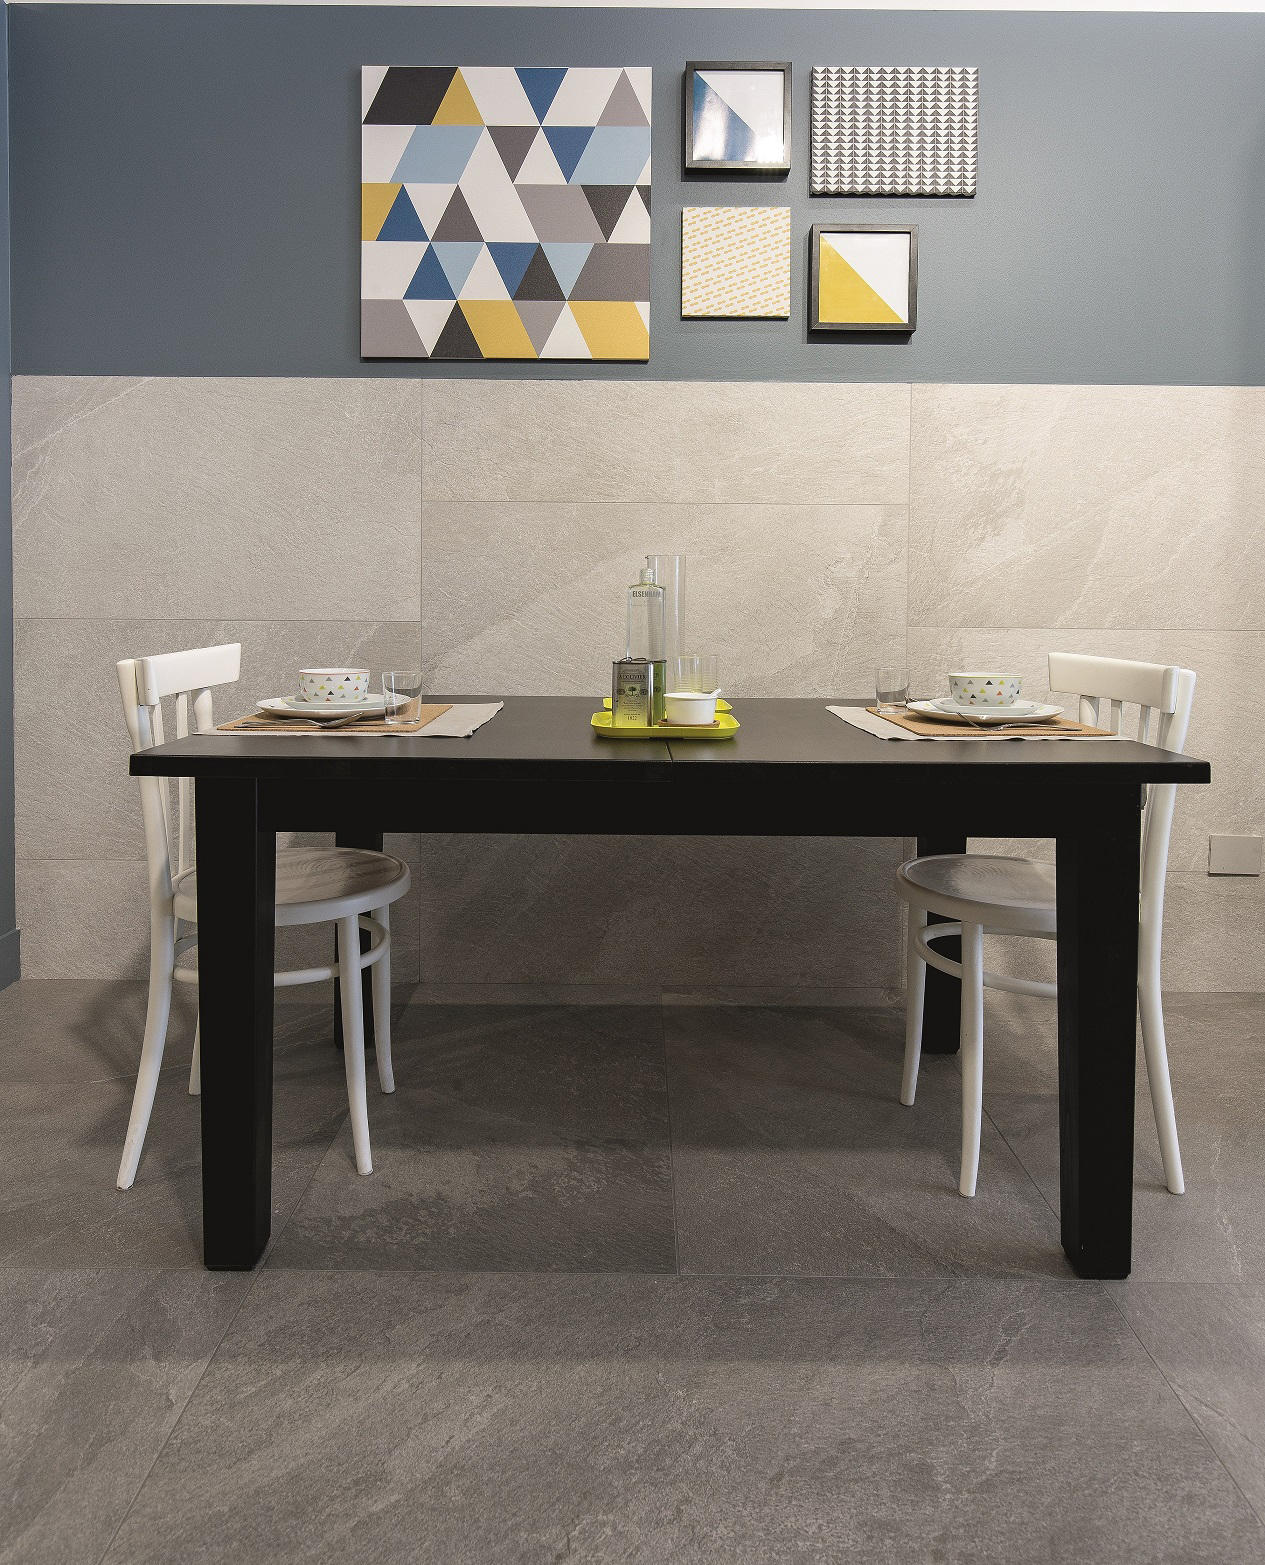 Natural stone white fossil floor tiles from cerim by florim natural stone white fossil by cerim by florim floor tiles dailygadgetfo Choice Image